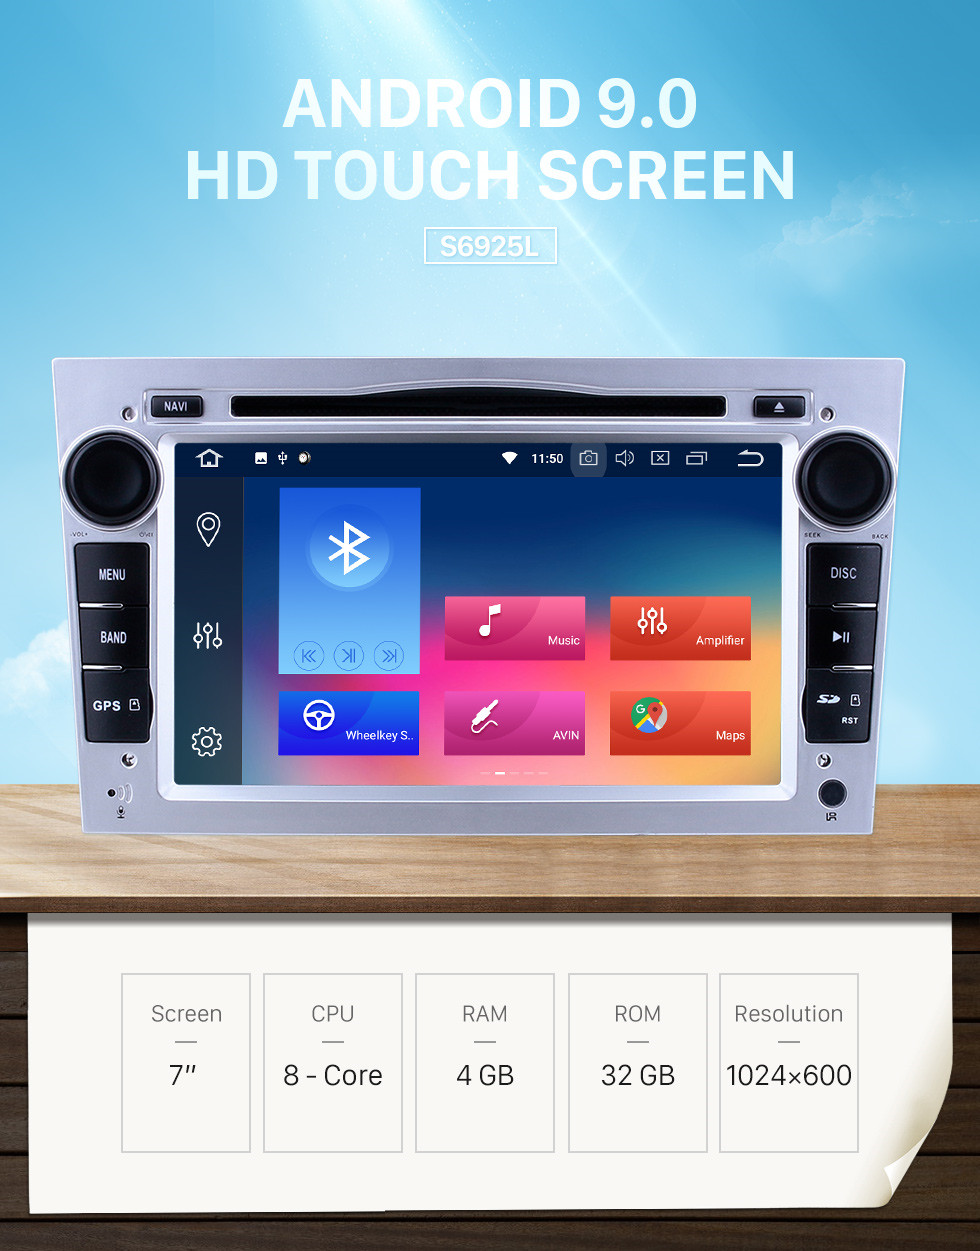 Seicane HD 1024*600 Touch Screen Android 9.0 2005-2011 Opel Zafira Multimedia GPS Radio Stereo Replacement with CD DVD Player Bluetooth OBD2 Backup Camera Mirror Link 3G WiFi HD 1080P Video